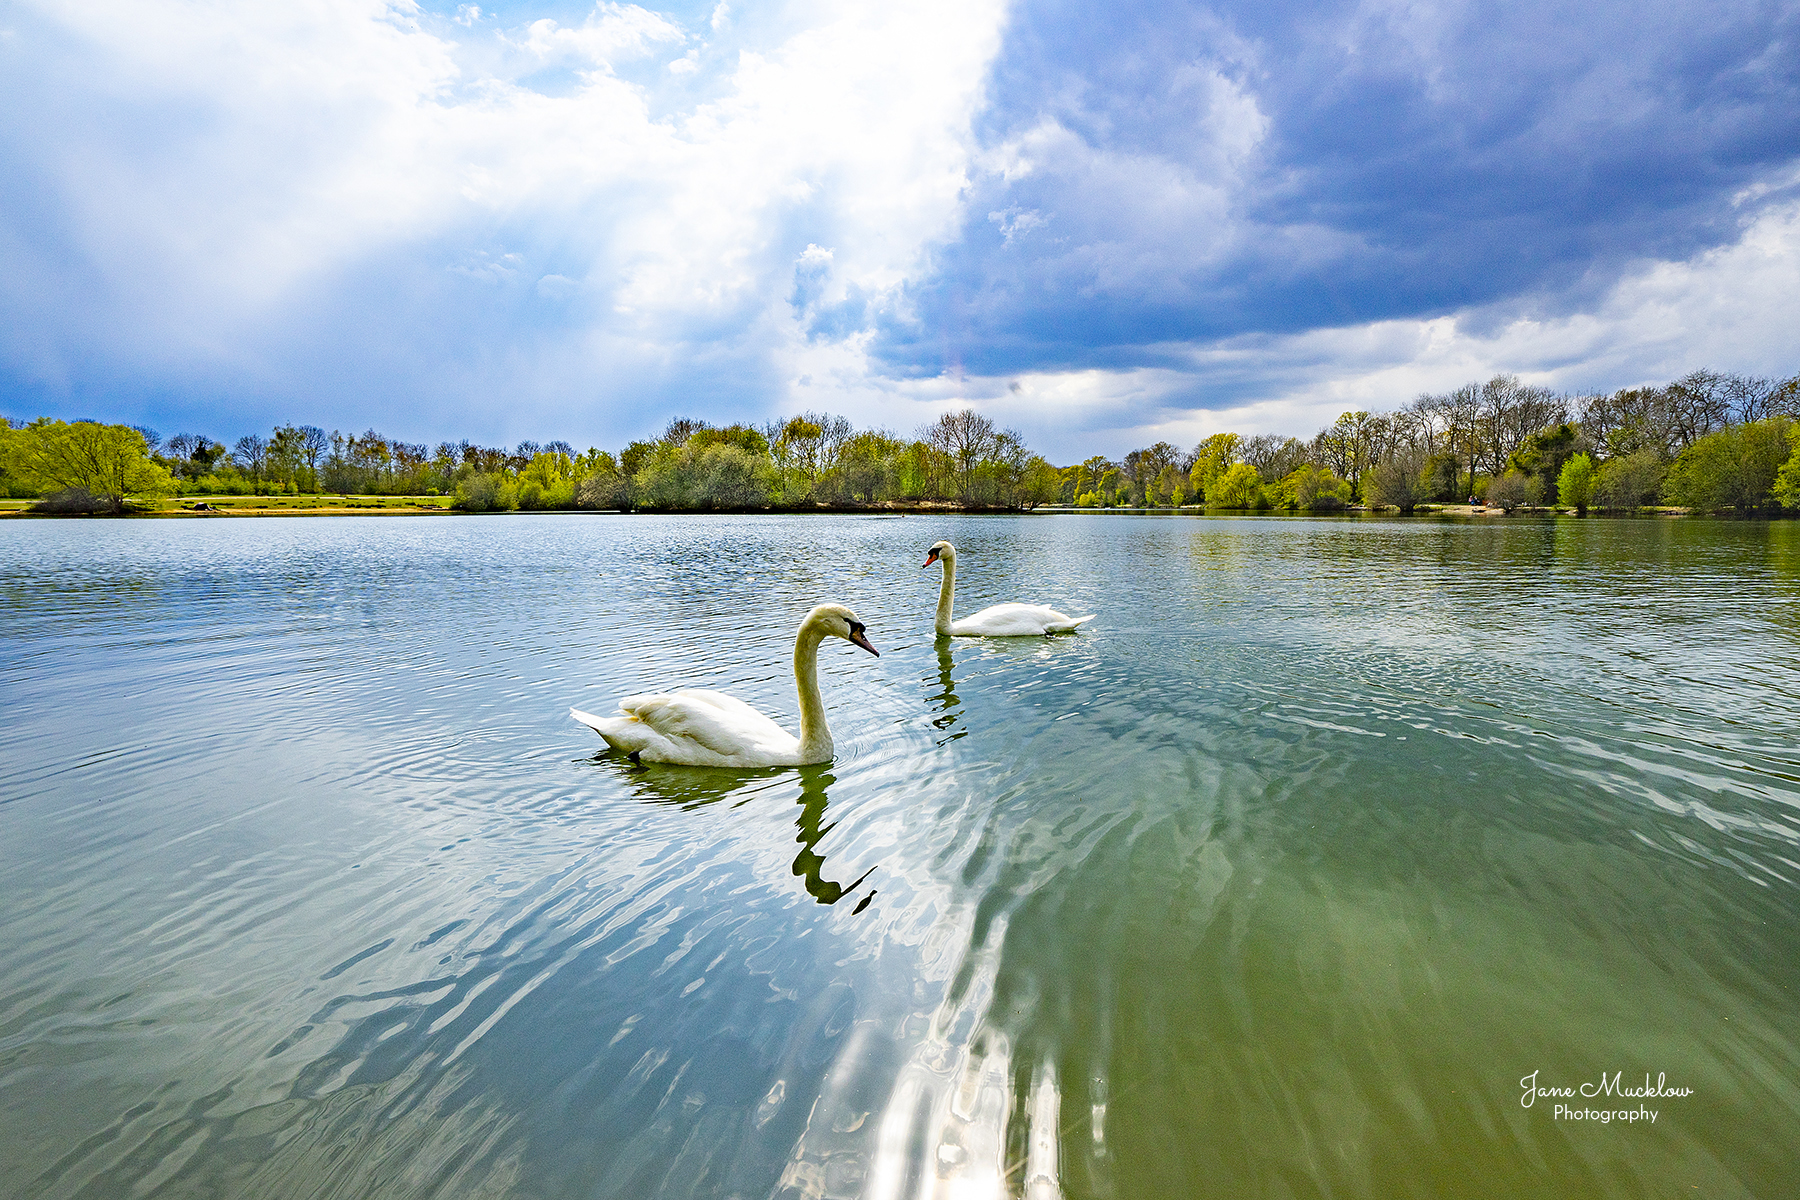 Photo of swans on a calm Barden Lake, with clouds, near Tonbridge, by Jane Mucklow